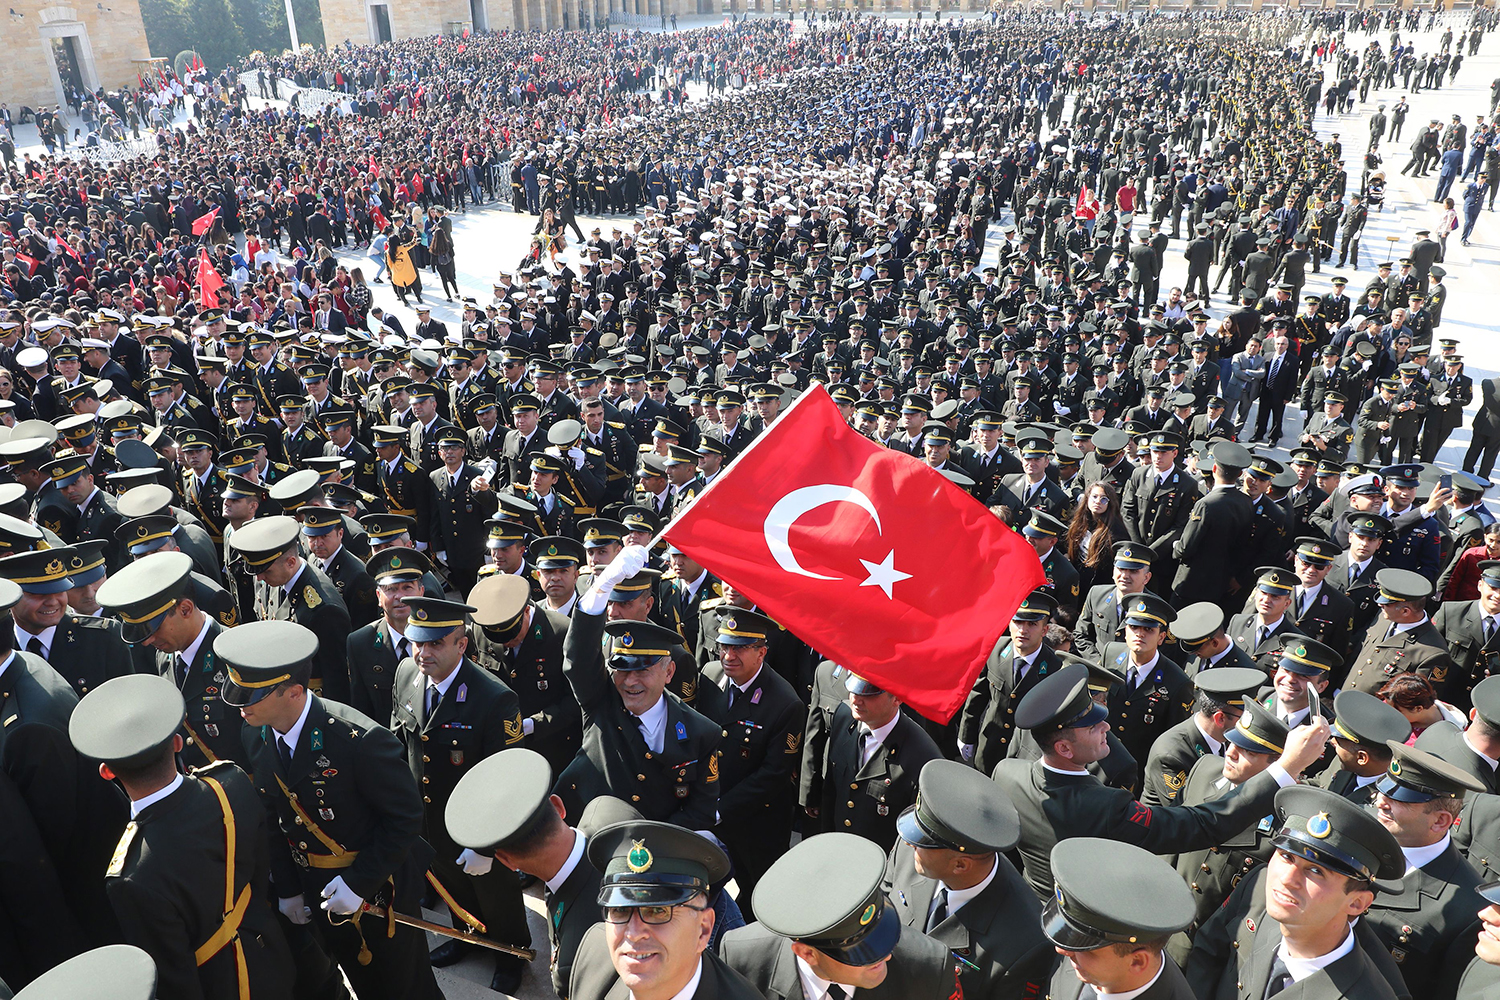 Military personnel gather at the Anitkabir, the mausoleum of Mustafa Kemal Ataturk, founder of the Turkish Republic, as part of 96th Republic Day commemorations in Ankara on Oct. 29. ADEM ALTAN/AFP via Getty Images